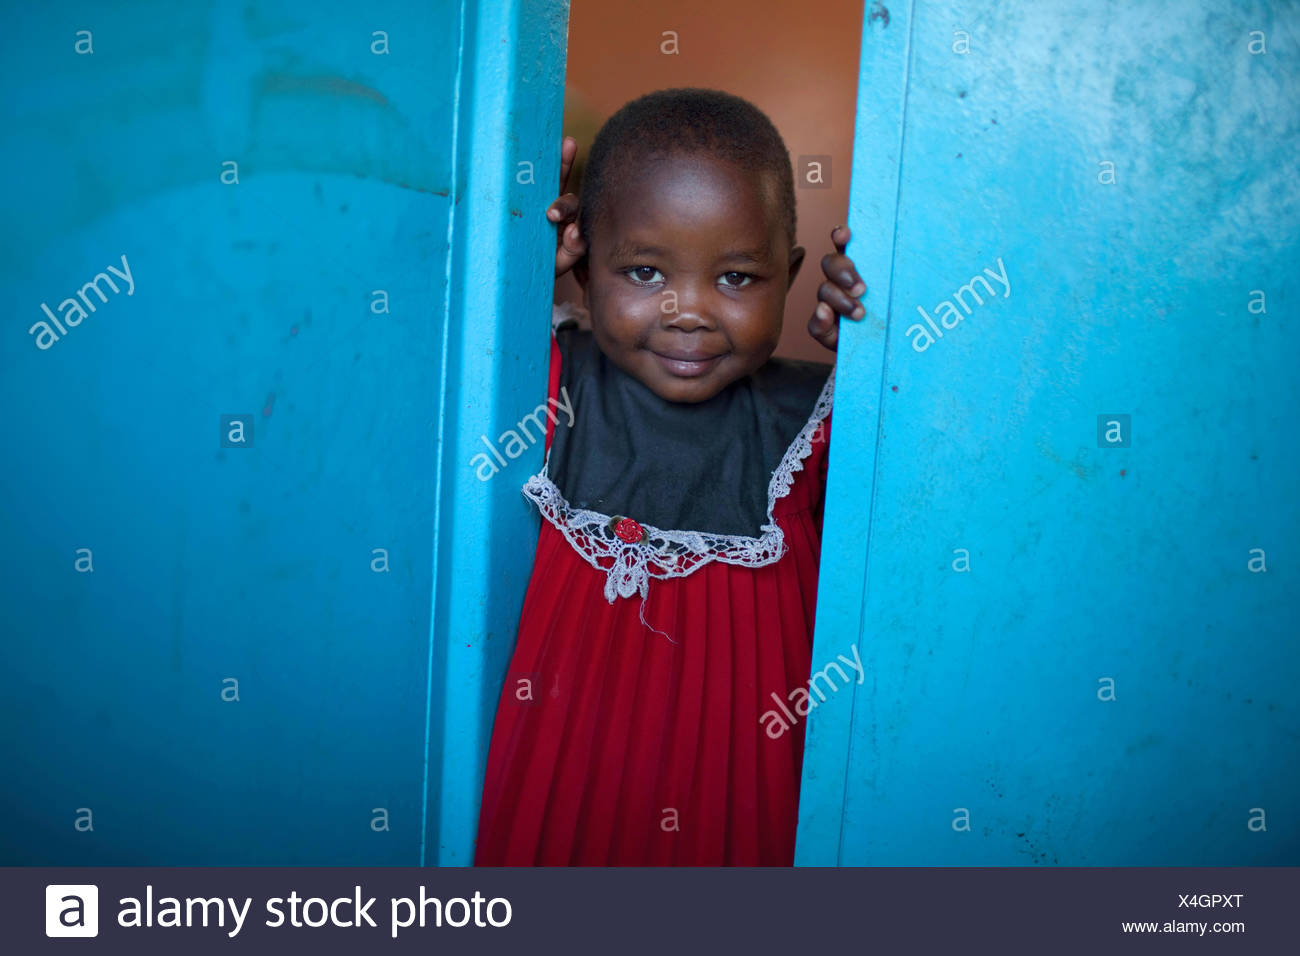 little girl in a red cloth looking out of a blue door, Burundi, Bujumbura Mairie, Bujumbura - Stock Image